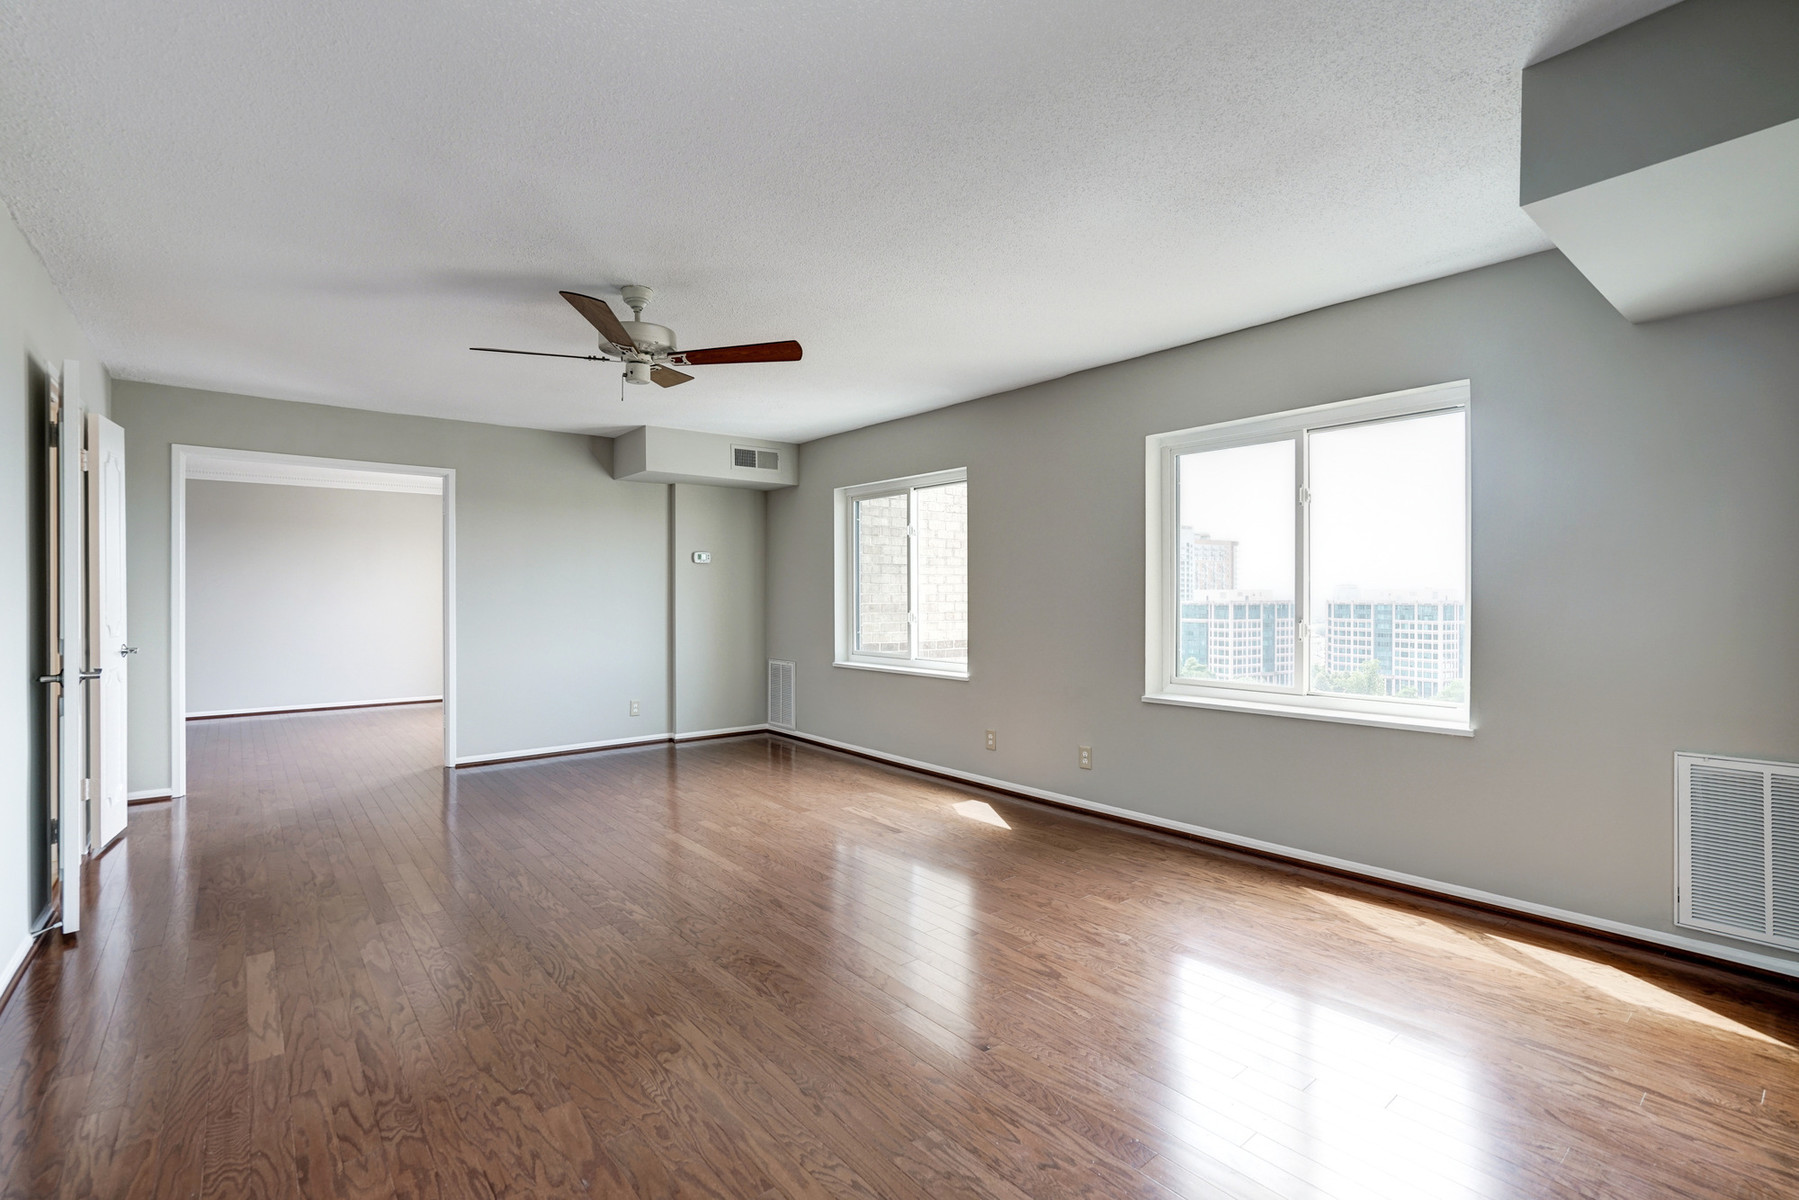 Additional photo for property listing at The Rotonda 8340 Greensboro Dr 1021 McLean, Βιρτζινια 22102 Ηνωμενεσ Πολιτειεσ